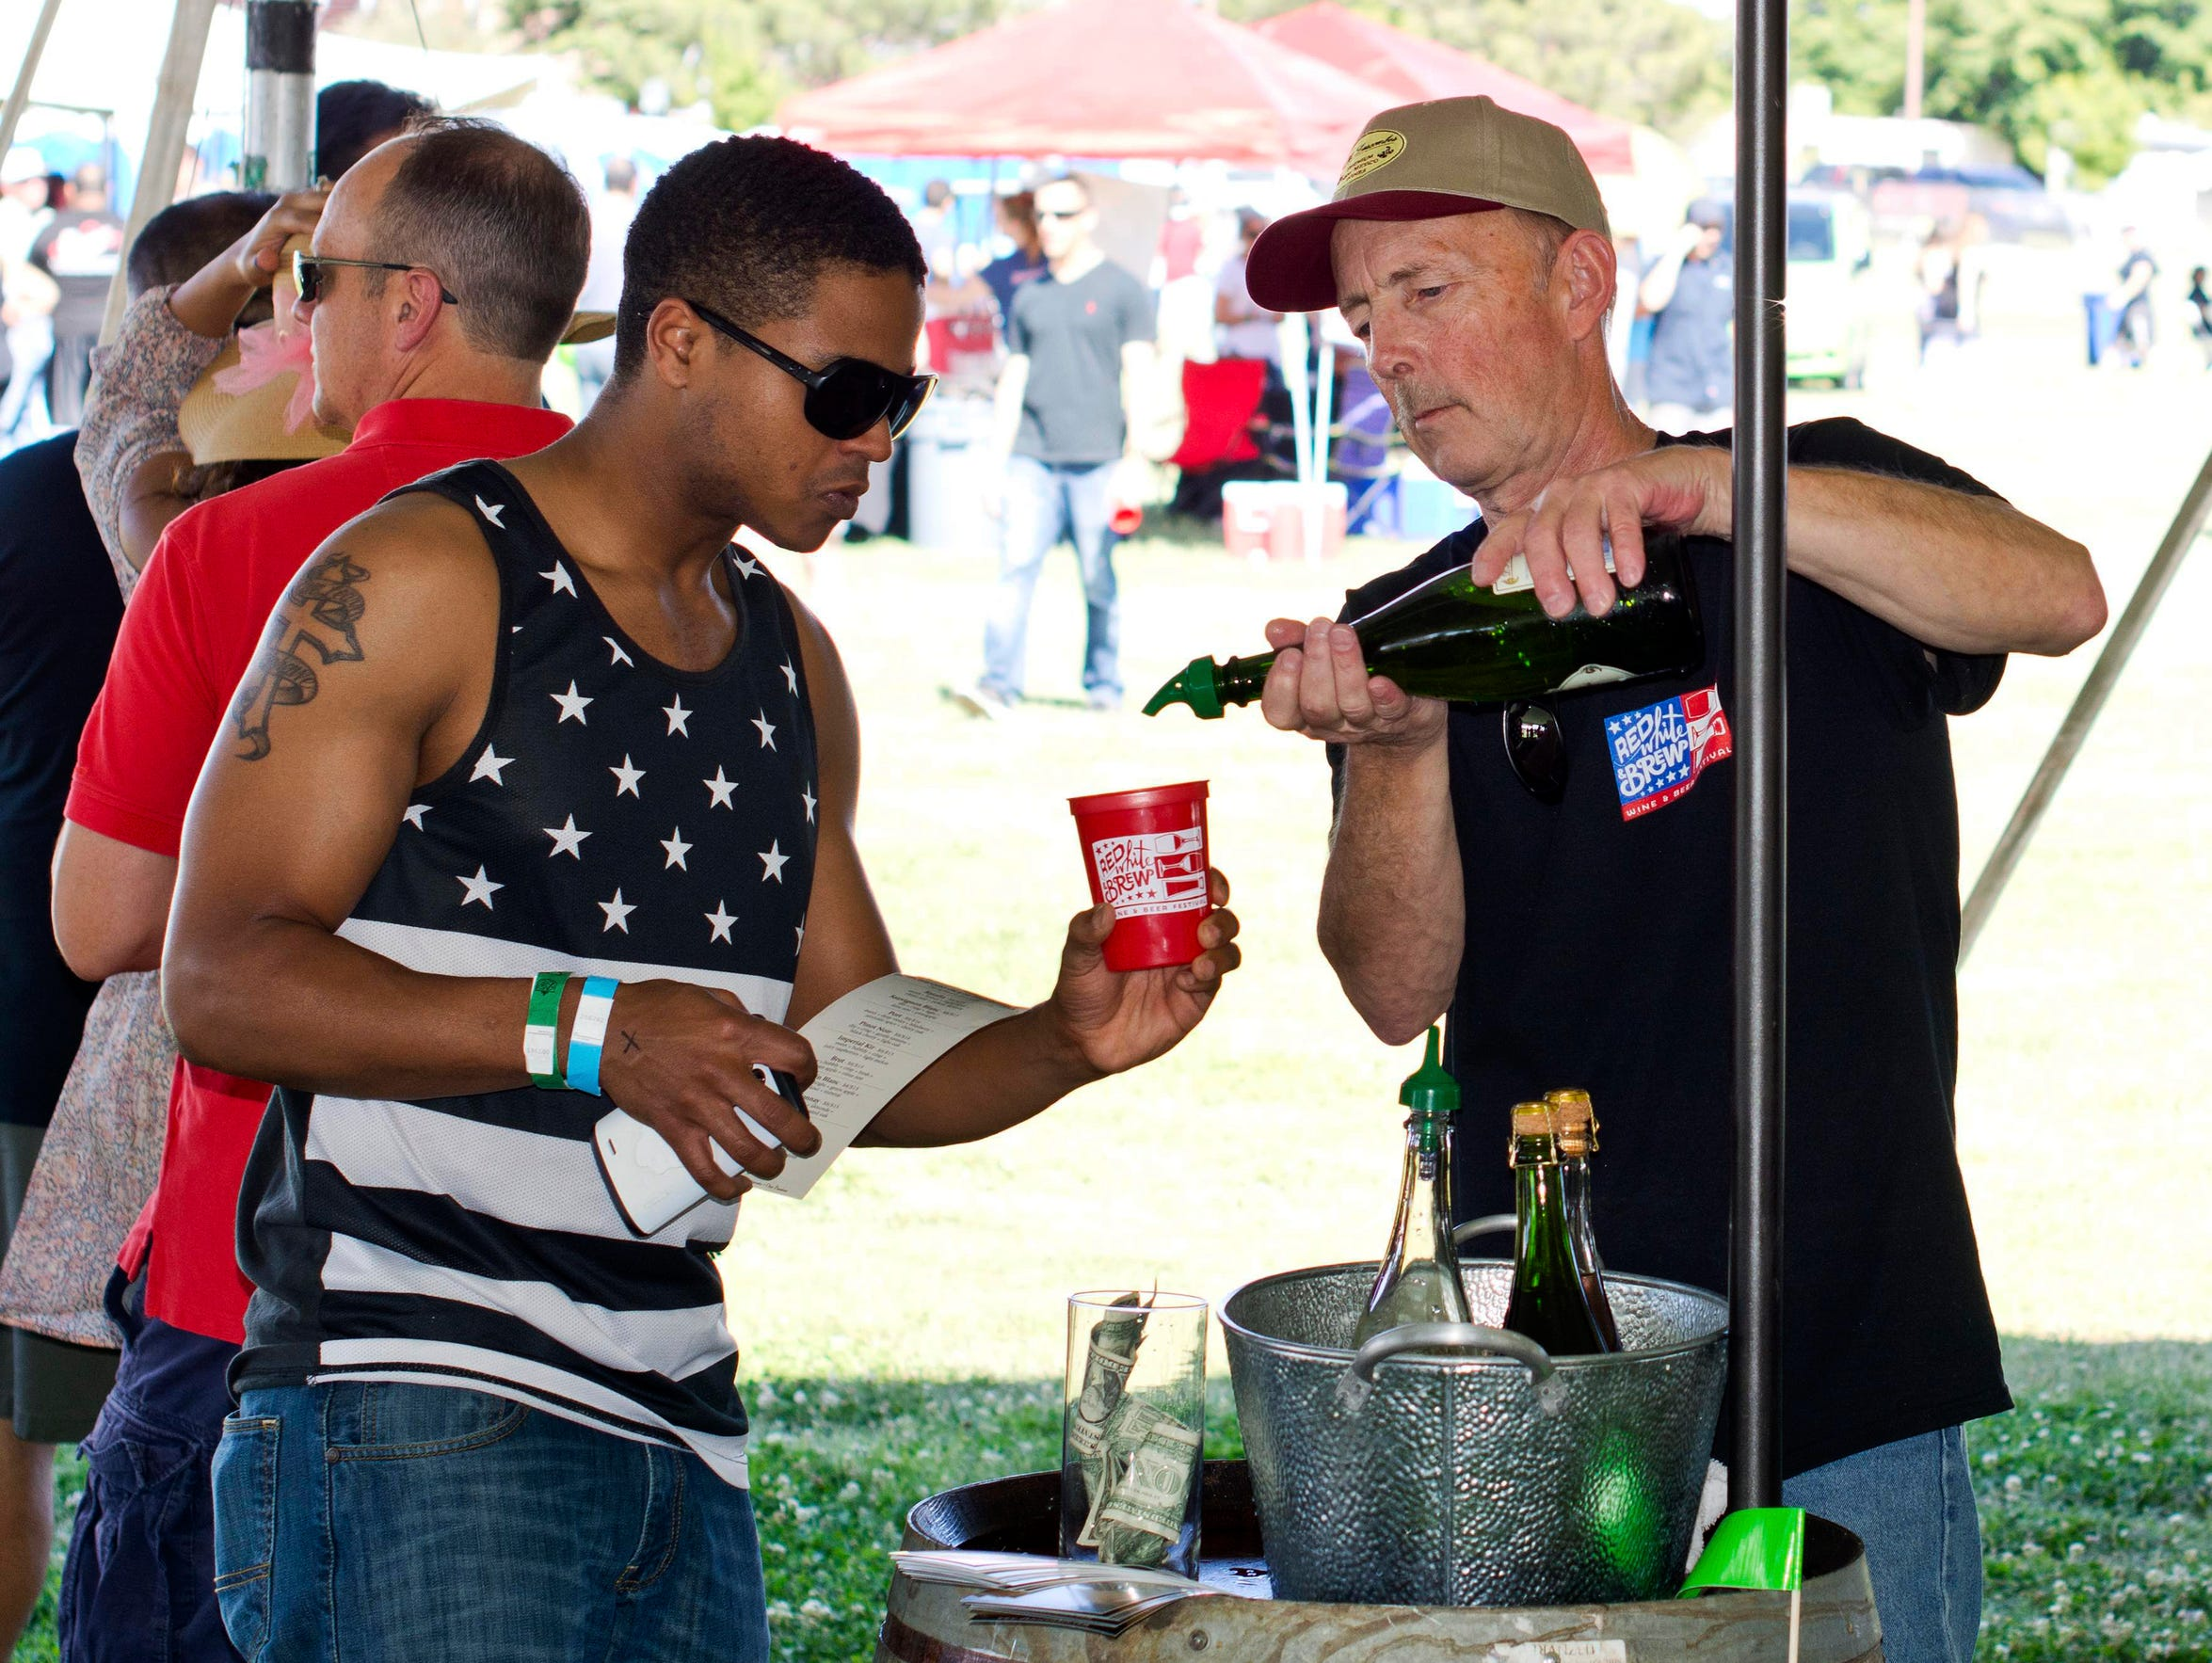 The 2017 Red, White & Brew Beer and Wine Fest is taking